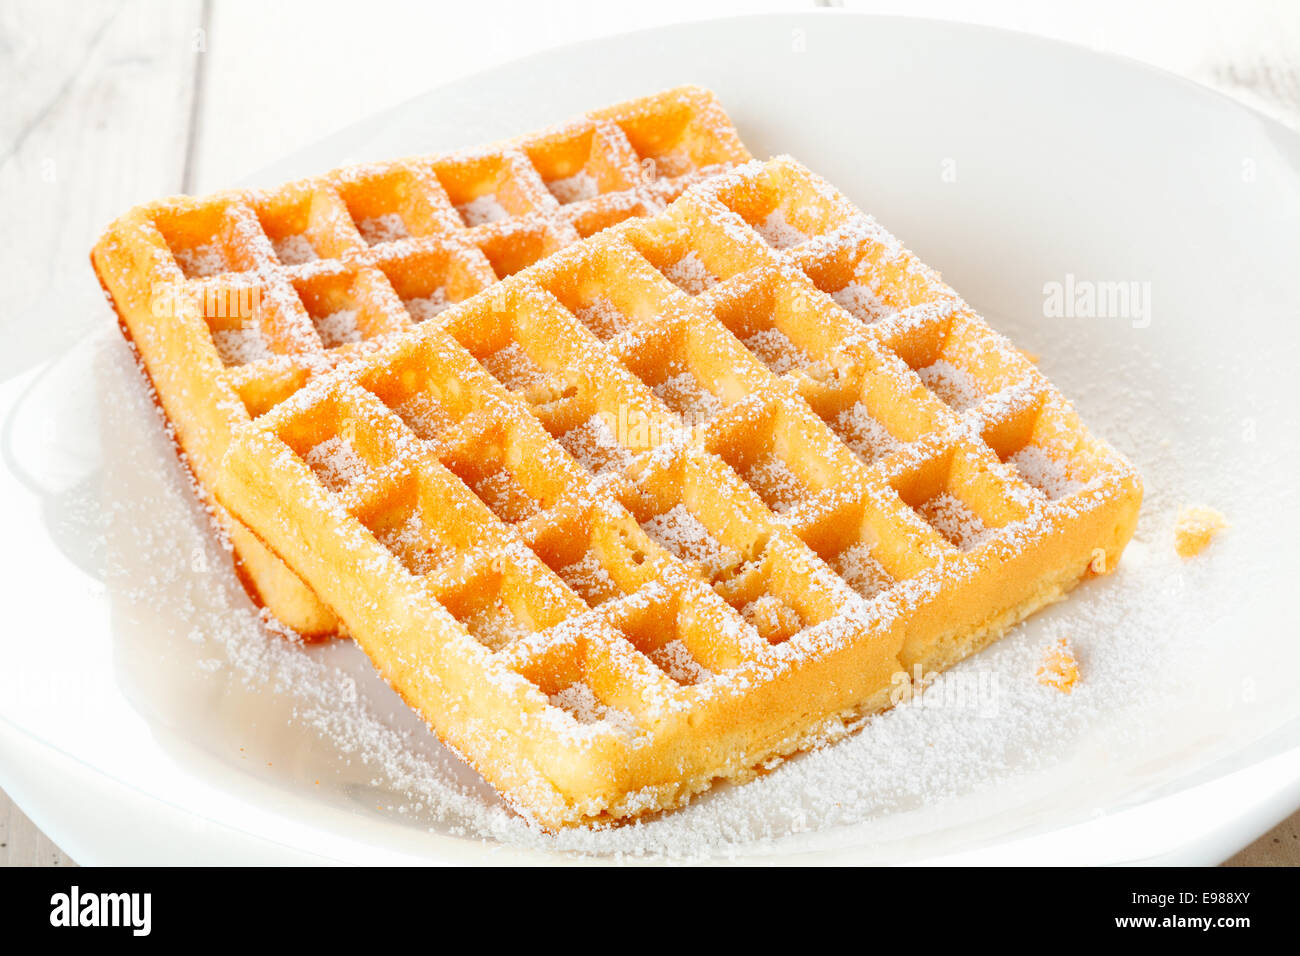 A pair of delicious fresh waffles, dusted with sugar an placed in a shallow white china bowl - Stock Image